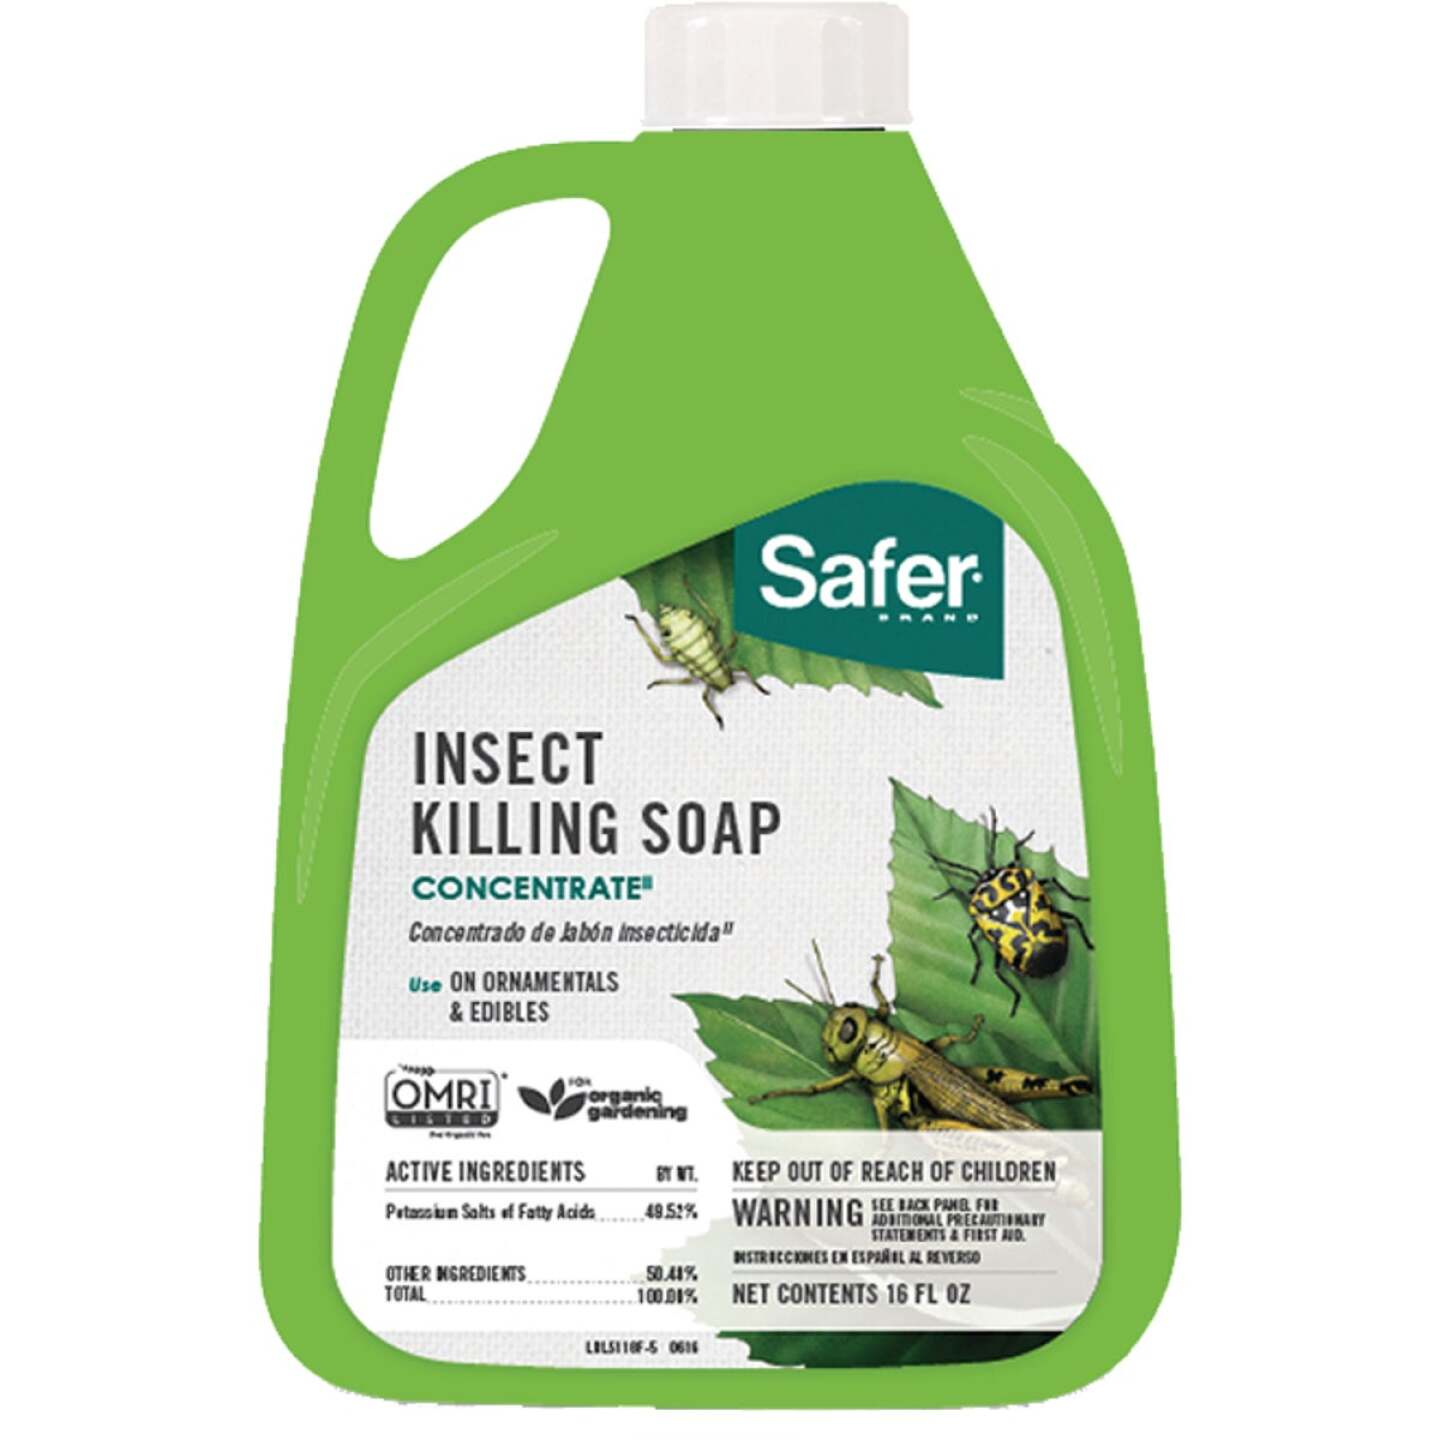 Safer 16 Oz. Concentrate Insecticidal Soap Insect Killer Image 1